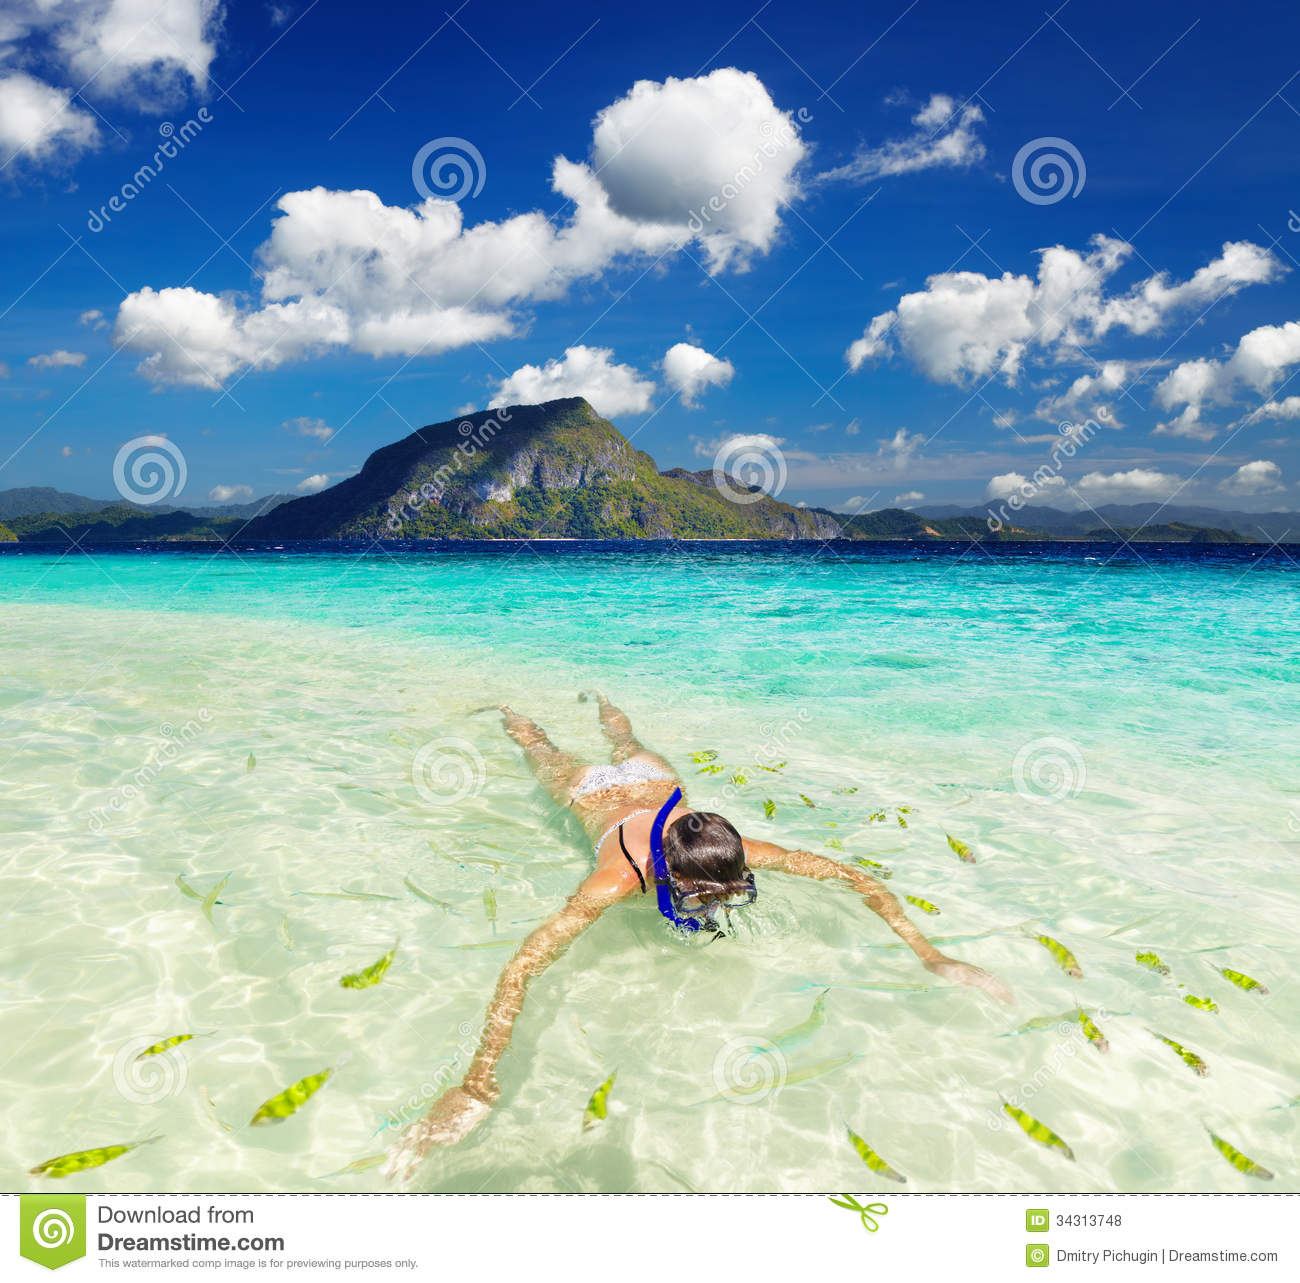 Tropical Beaches: Tropical Beach, Snorkeling Stock Photo. Image Of Paradise